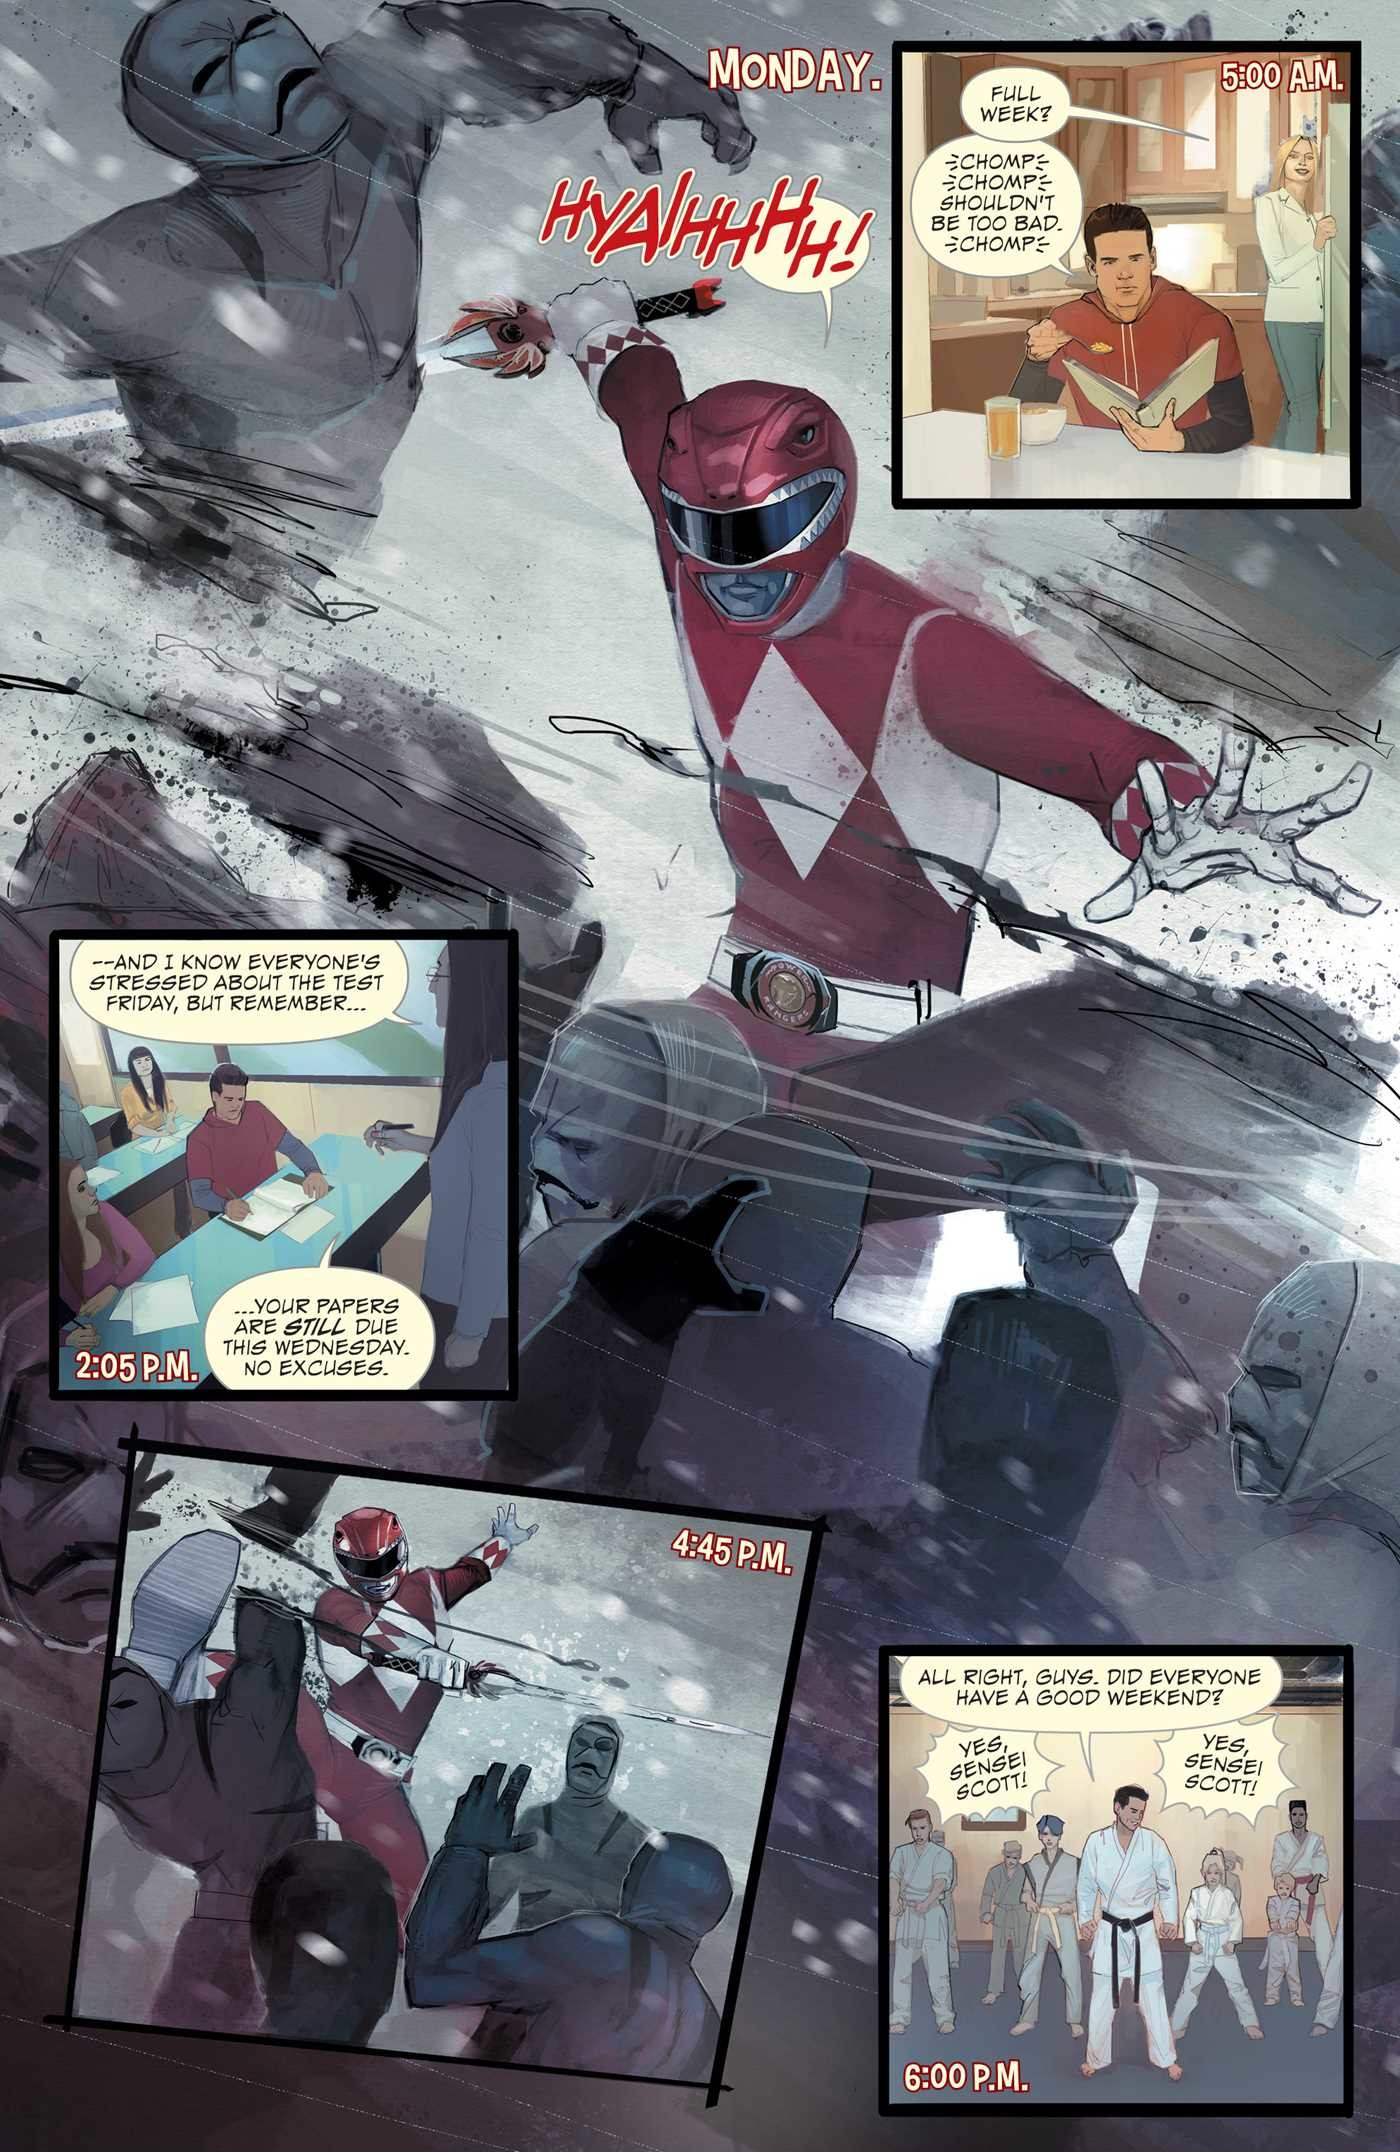 Mighty morphin power rangers lost chronicles 9781684152193.in01